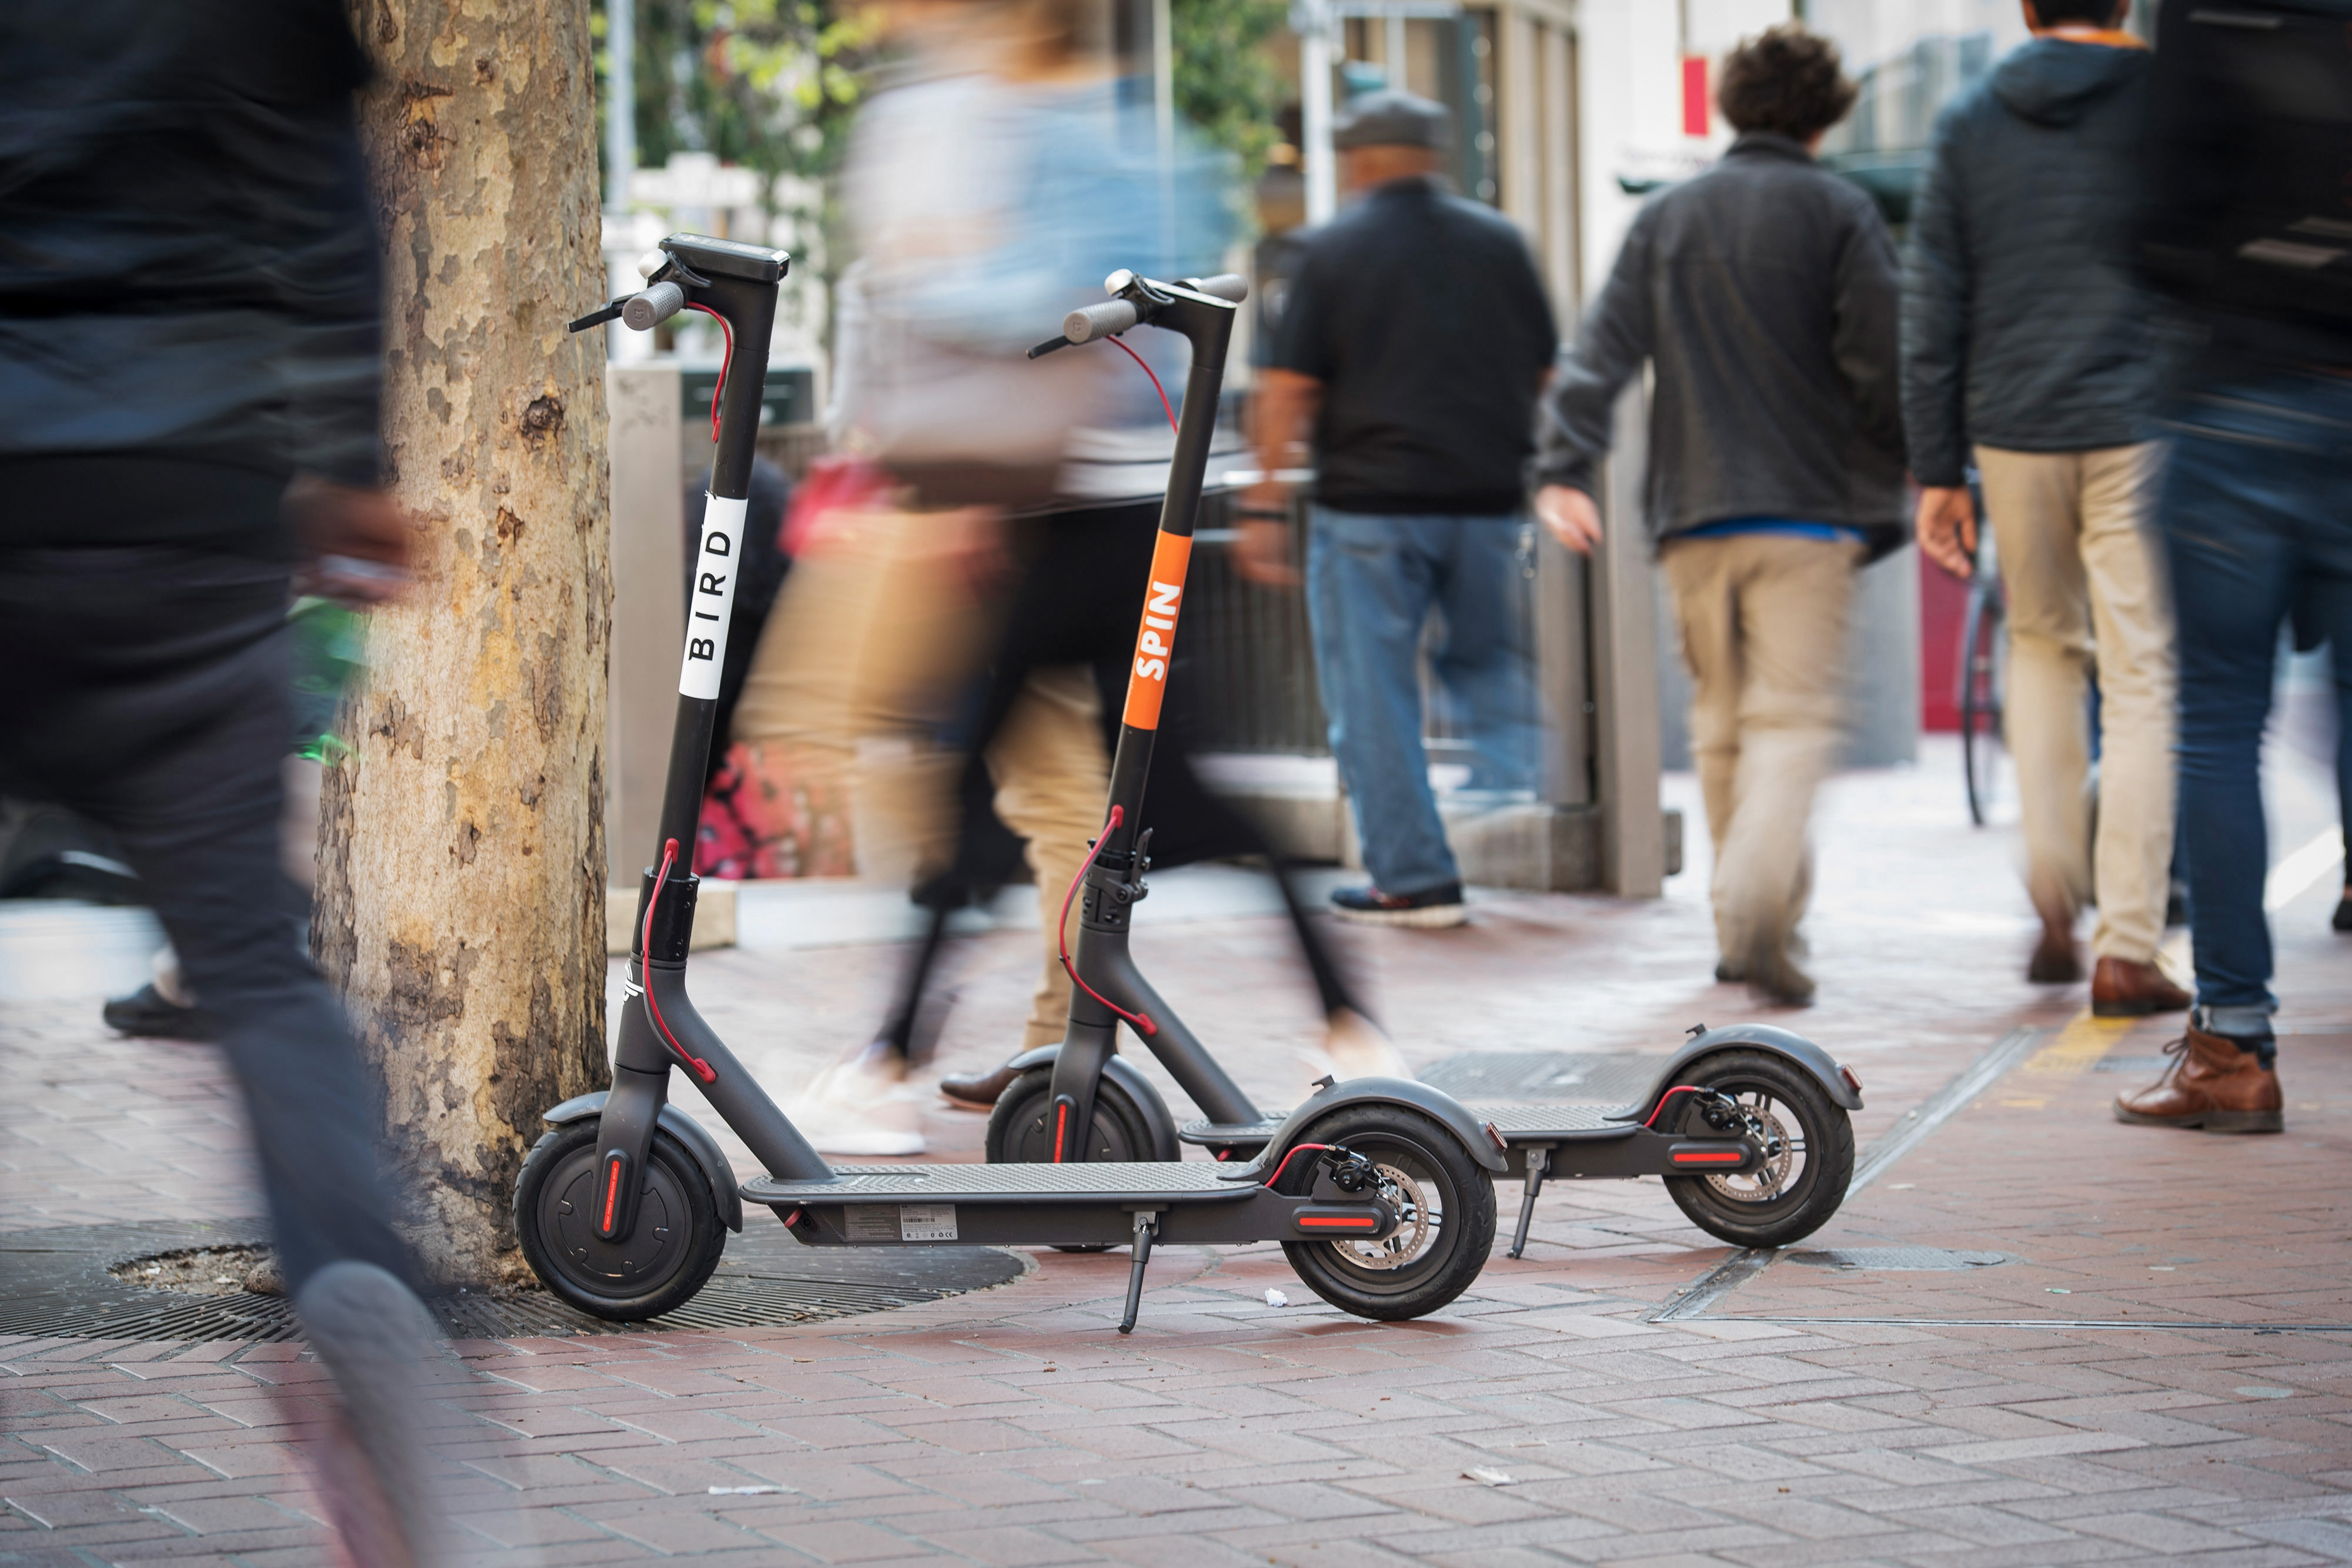 Motorized scooters, like these from Bird and Spin, have been showing up in cities around the U.S. MUST CREDIT: Bloomberg photo by David Paul Morris